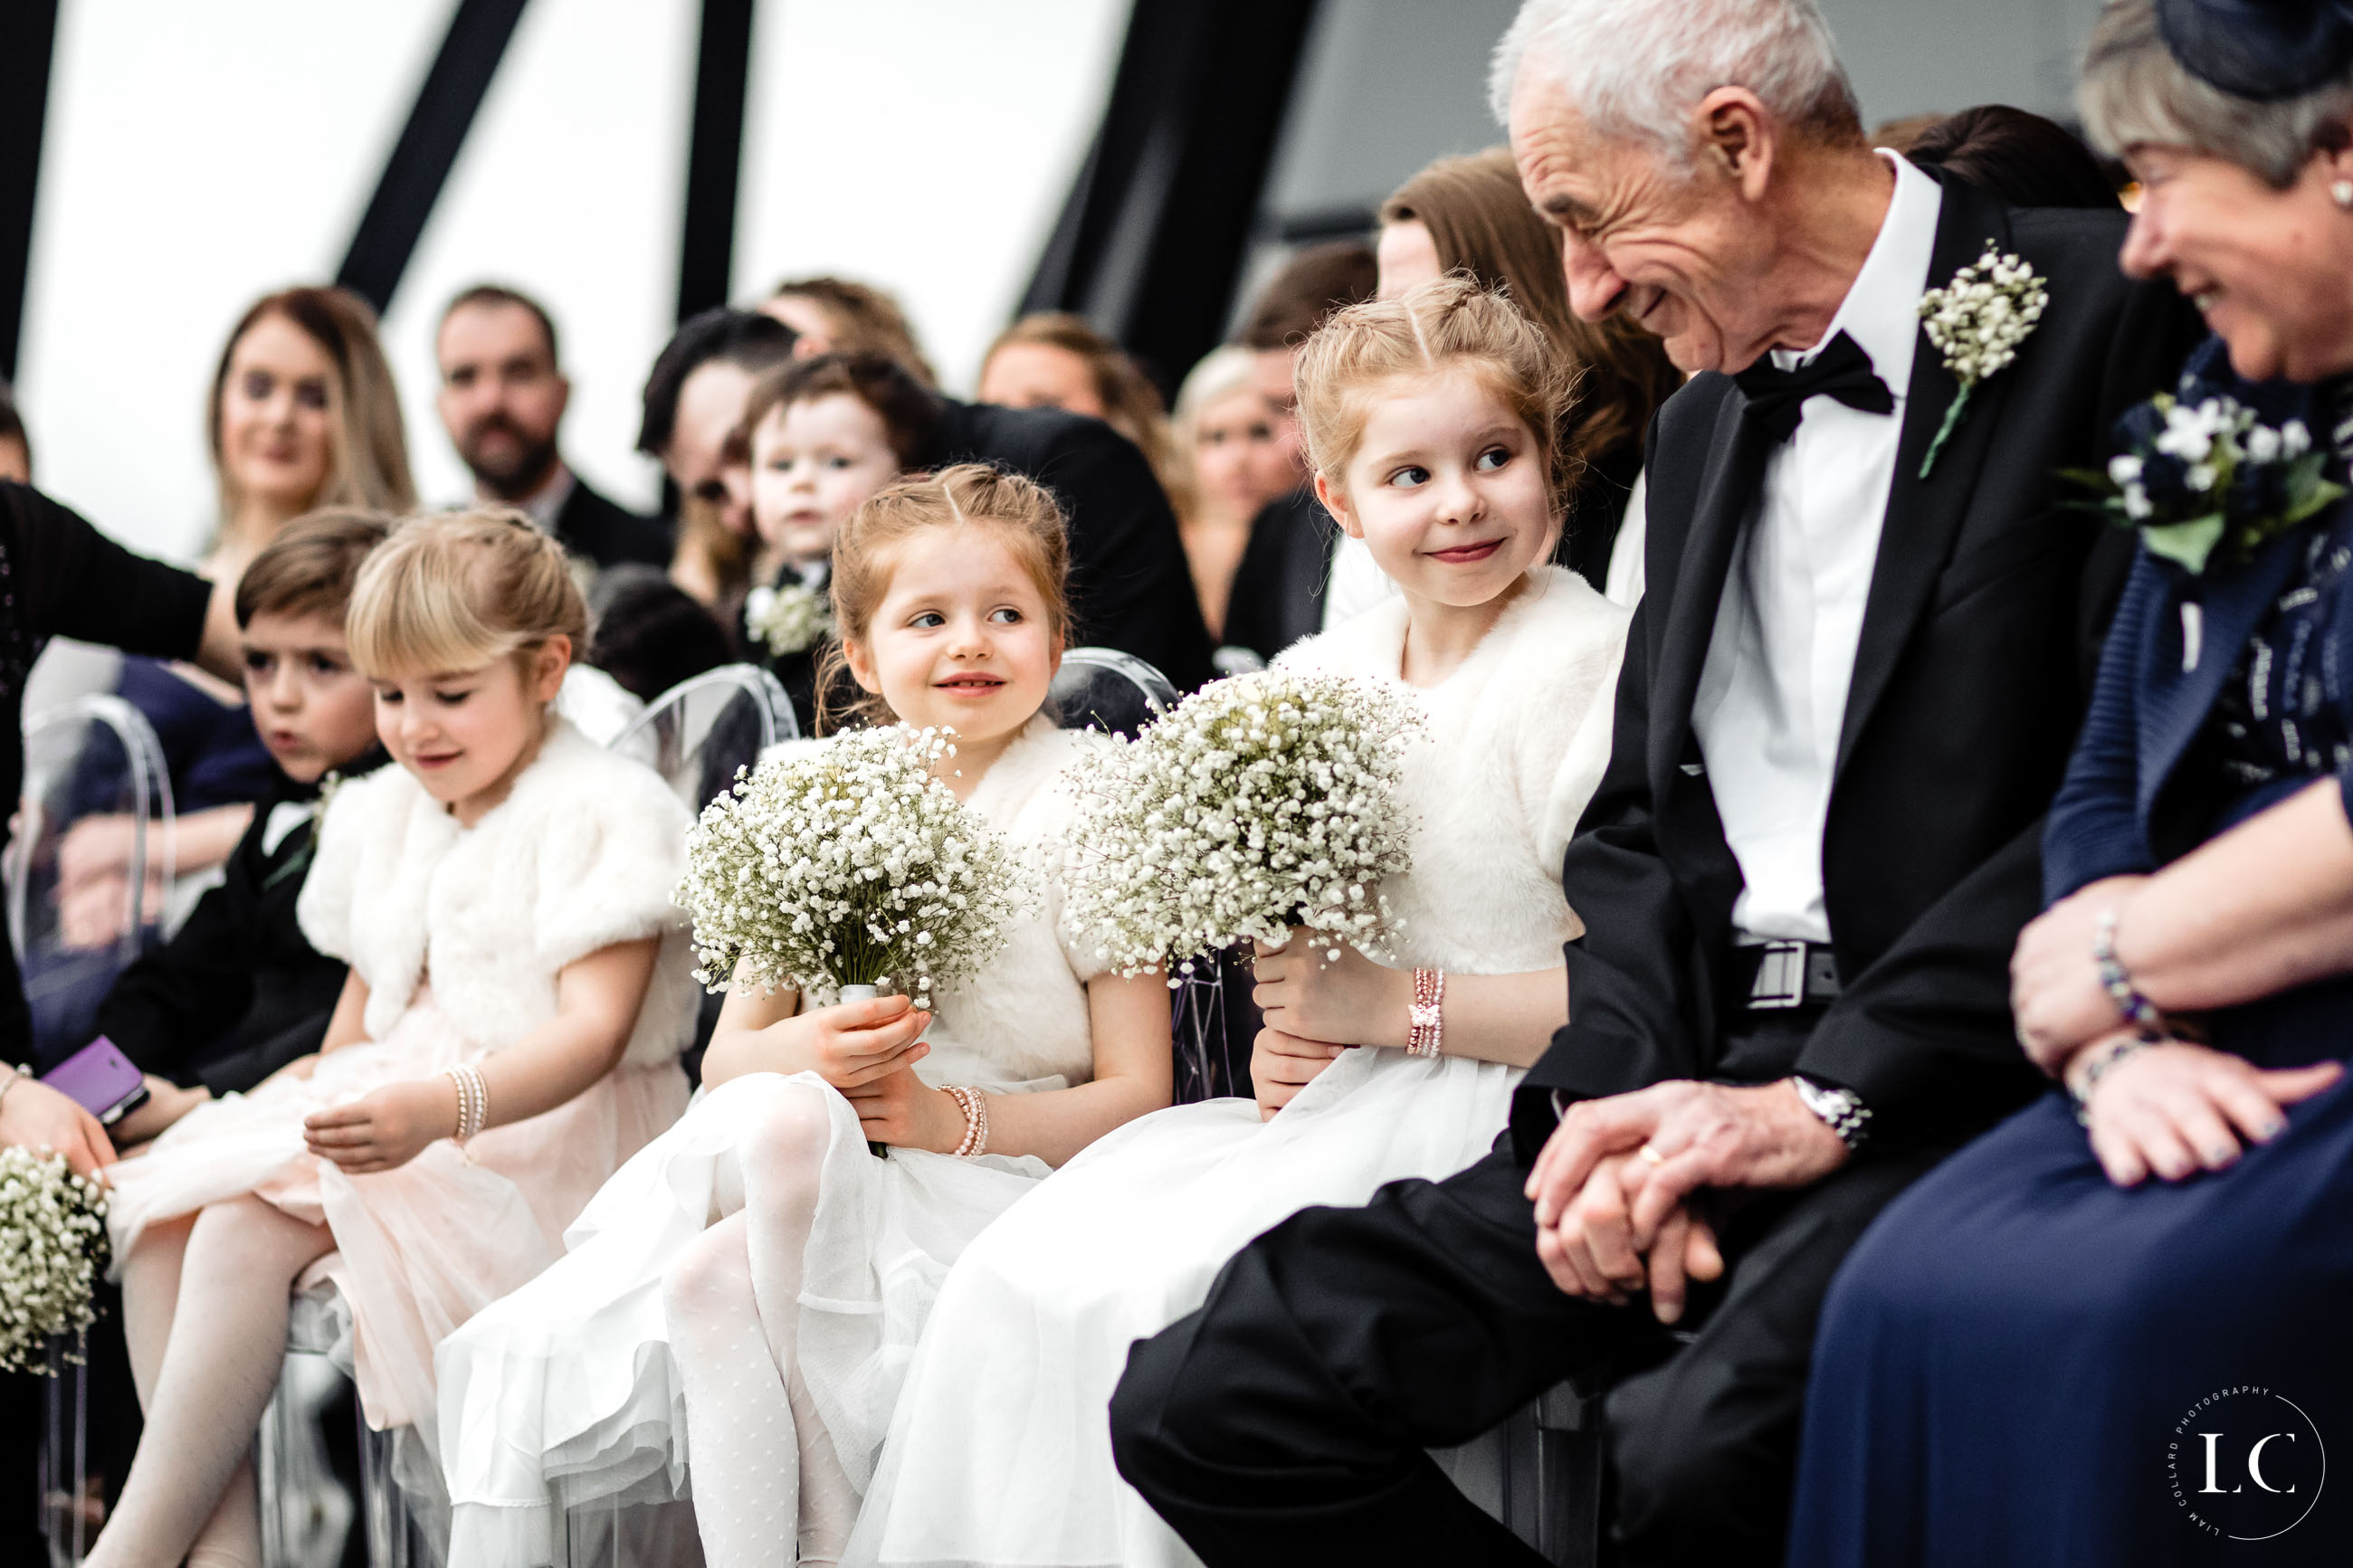 Children and guests seated